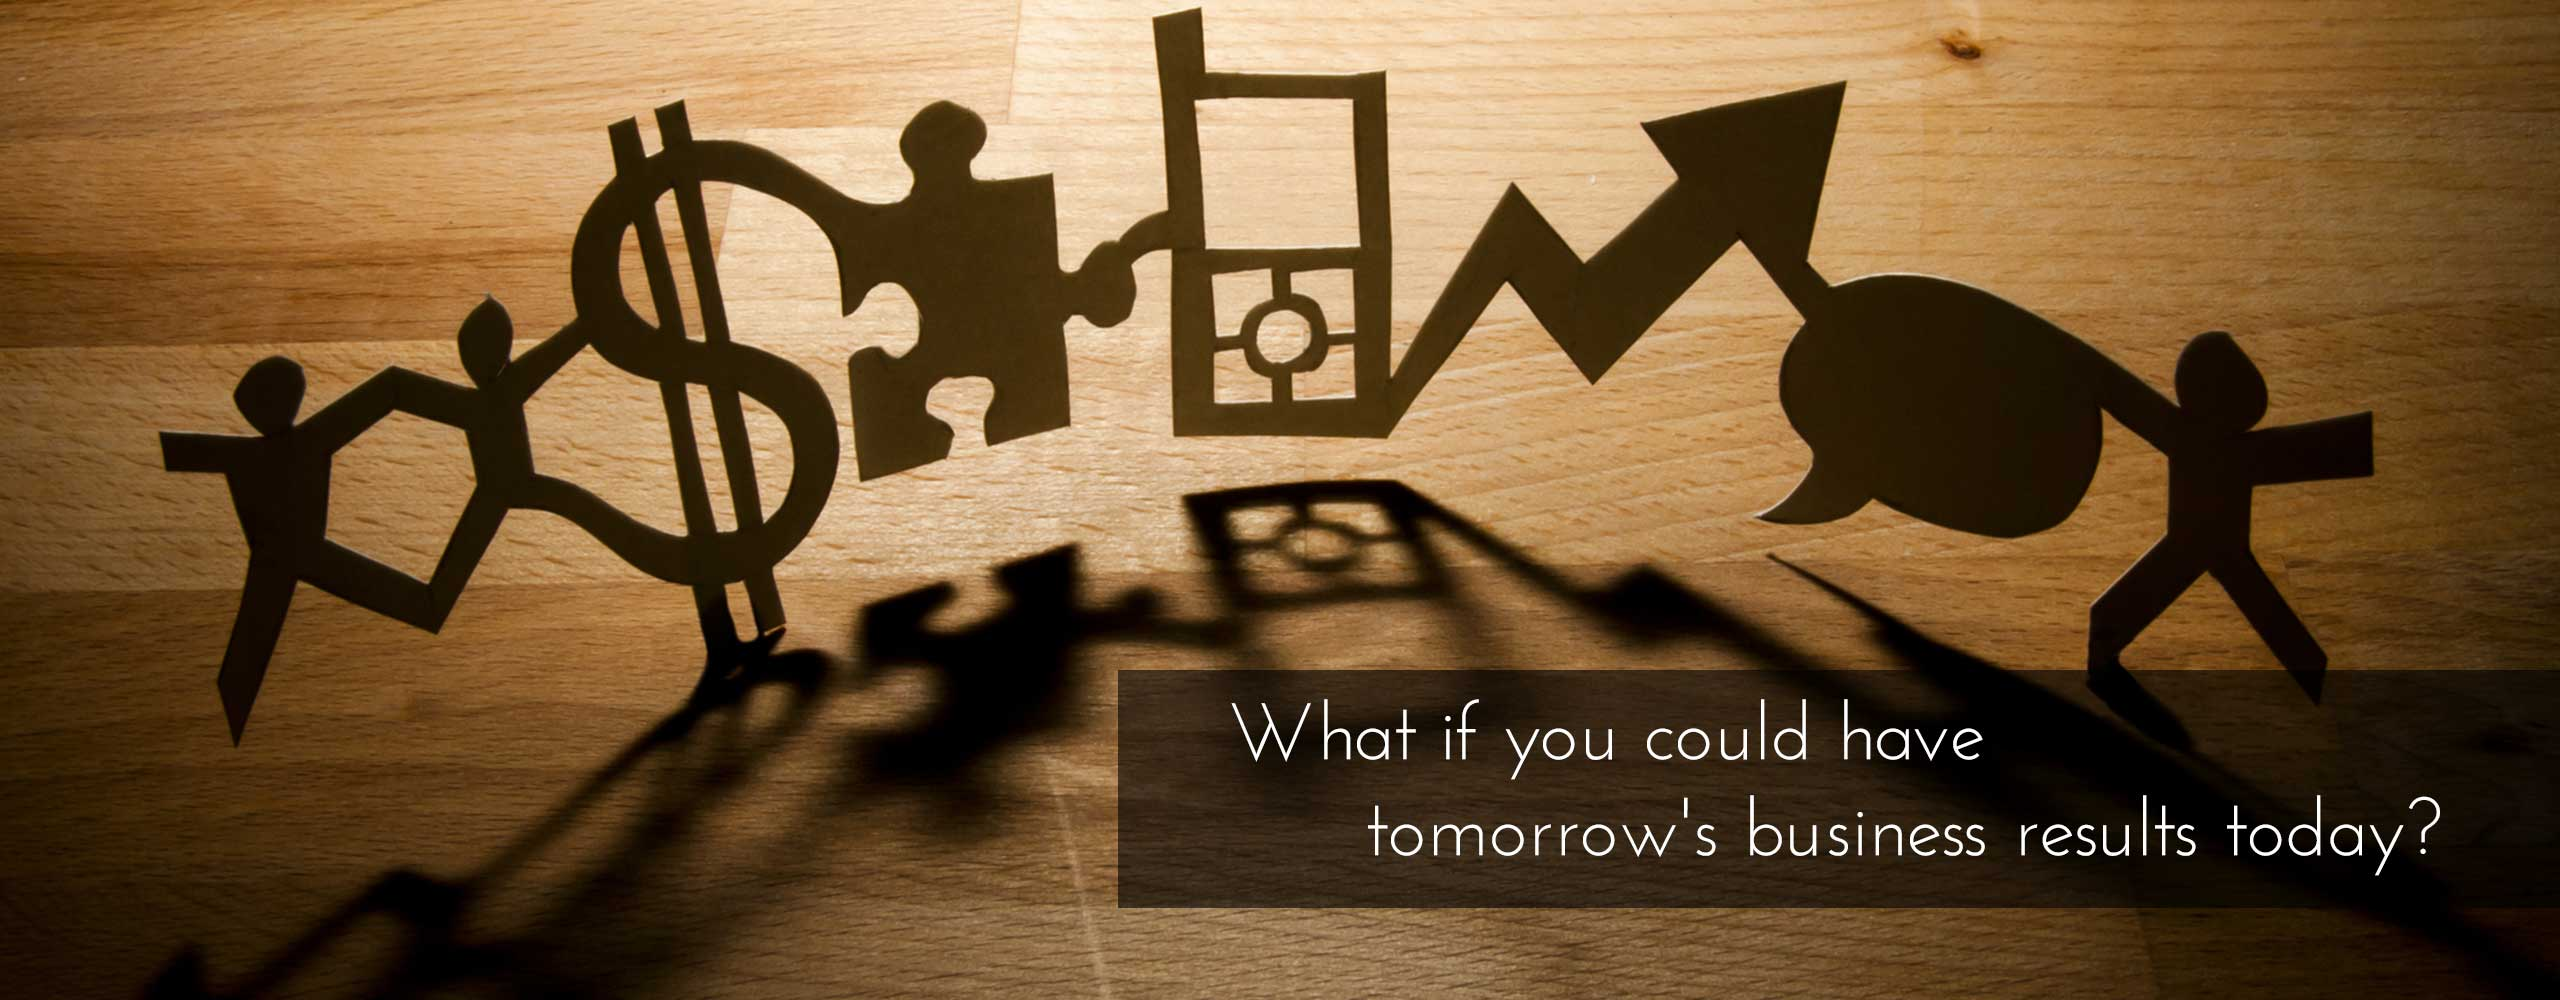 What if you could have tomorrow's business results today?